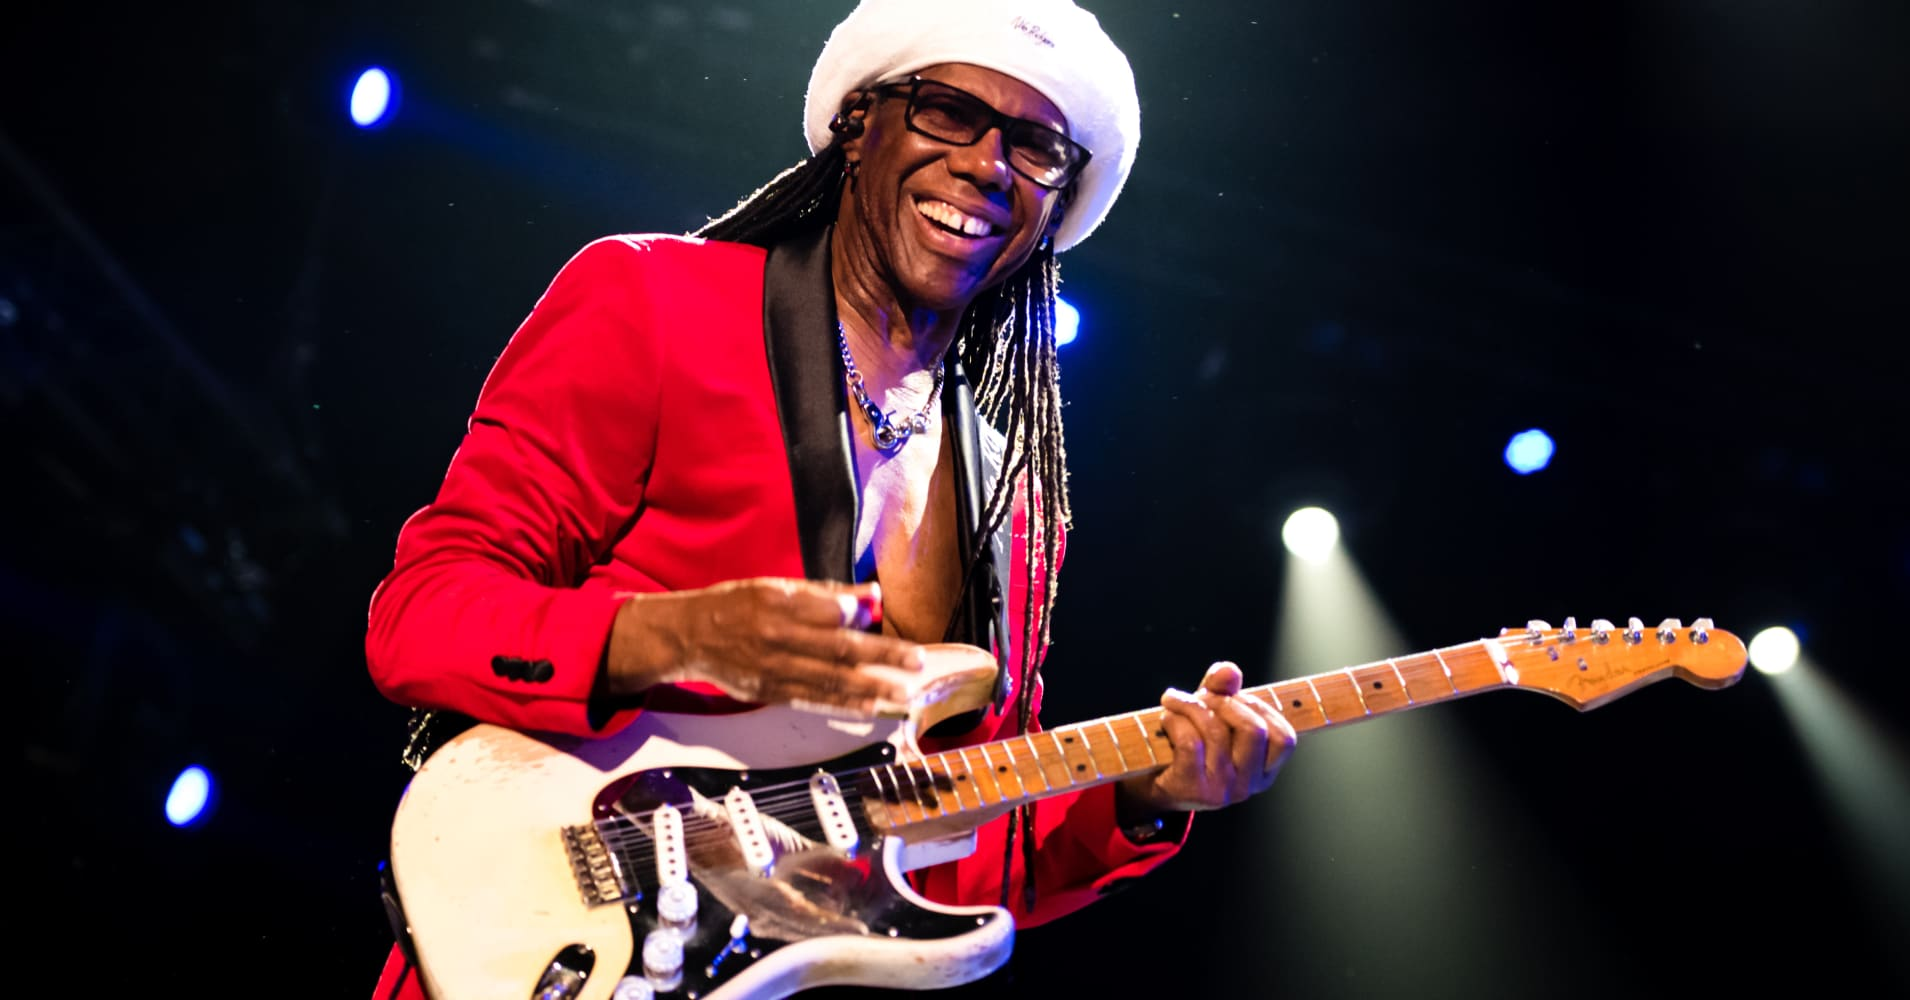 Nile Rodgers of Chic performs on stage at North Sea Jazz Festival at Ahoy on July 14, 2018 in Rotterdam, Netherlands.